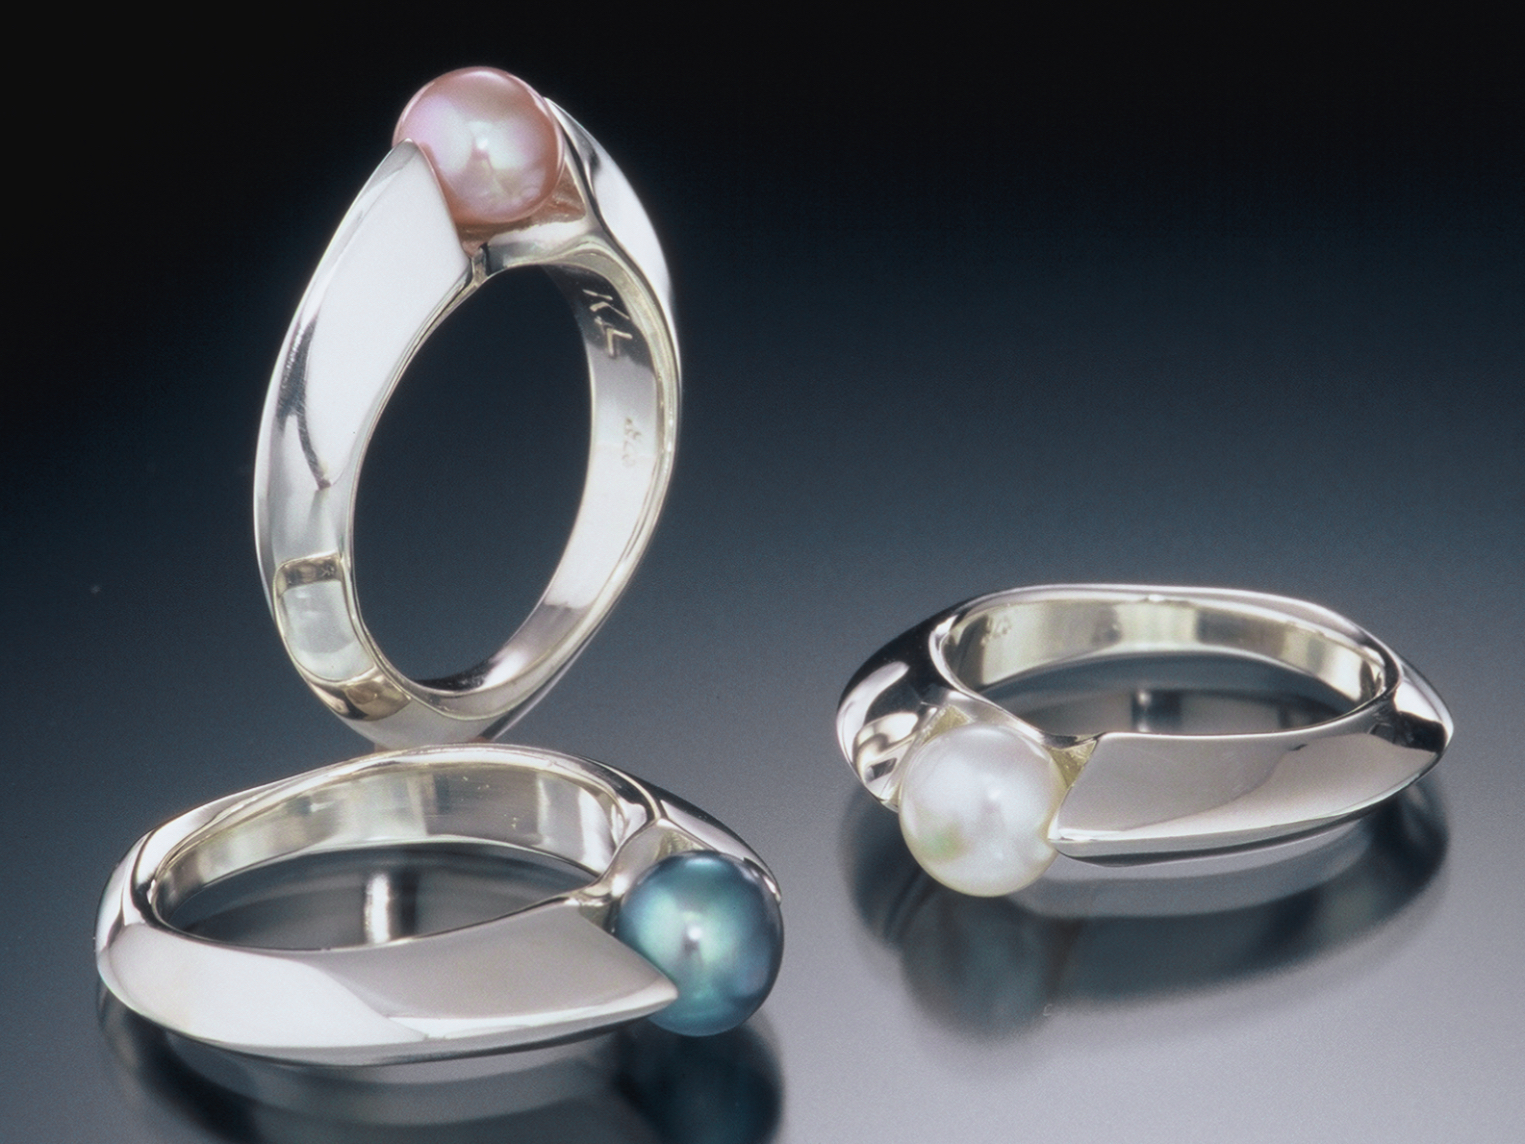 """One of our signature designs set with a pearl - the sterling silver """"Slim"""" pearl ring"""